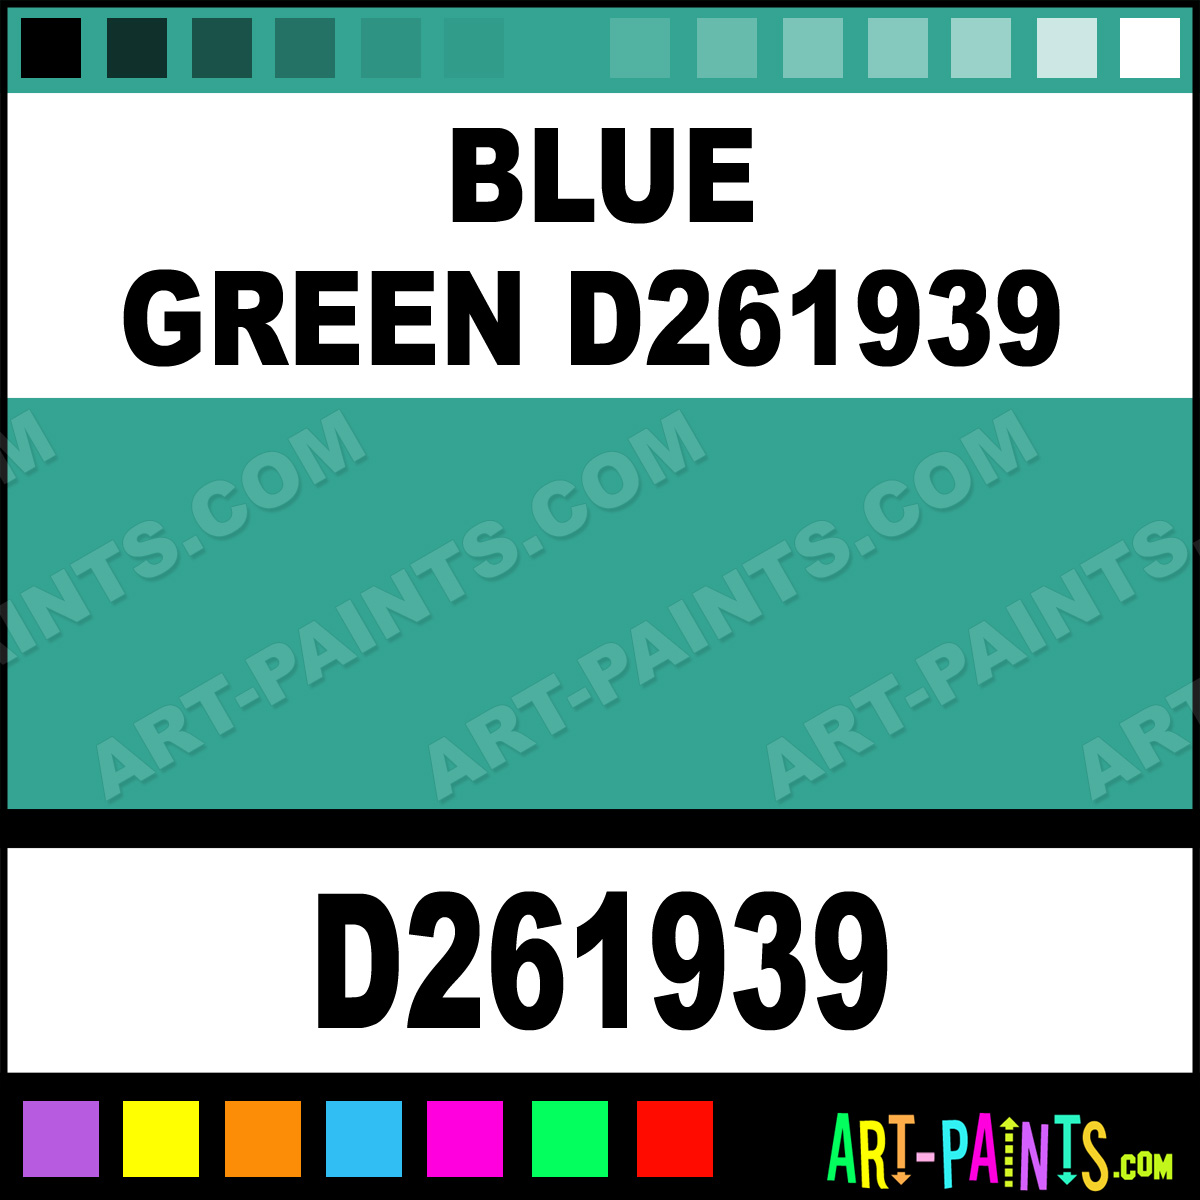 Blue Green D261939 Reusche Stained Glass And Window Paints Inks And Stains D261939 Blue